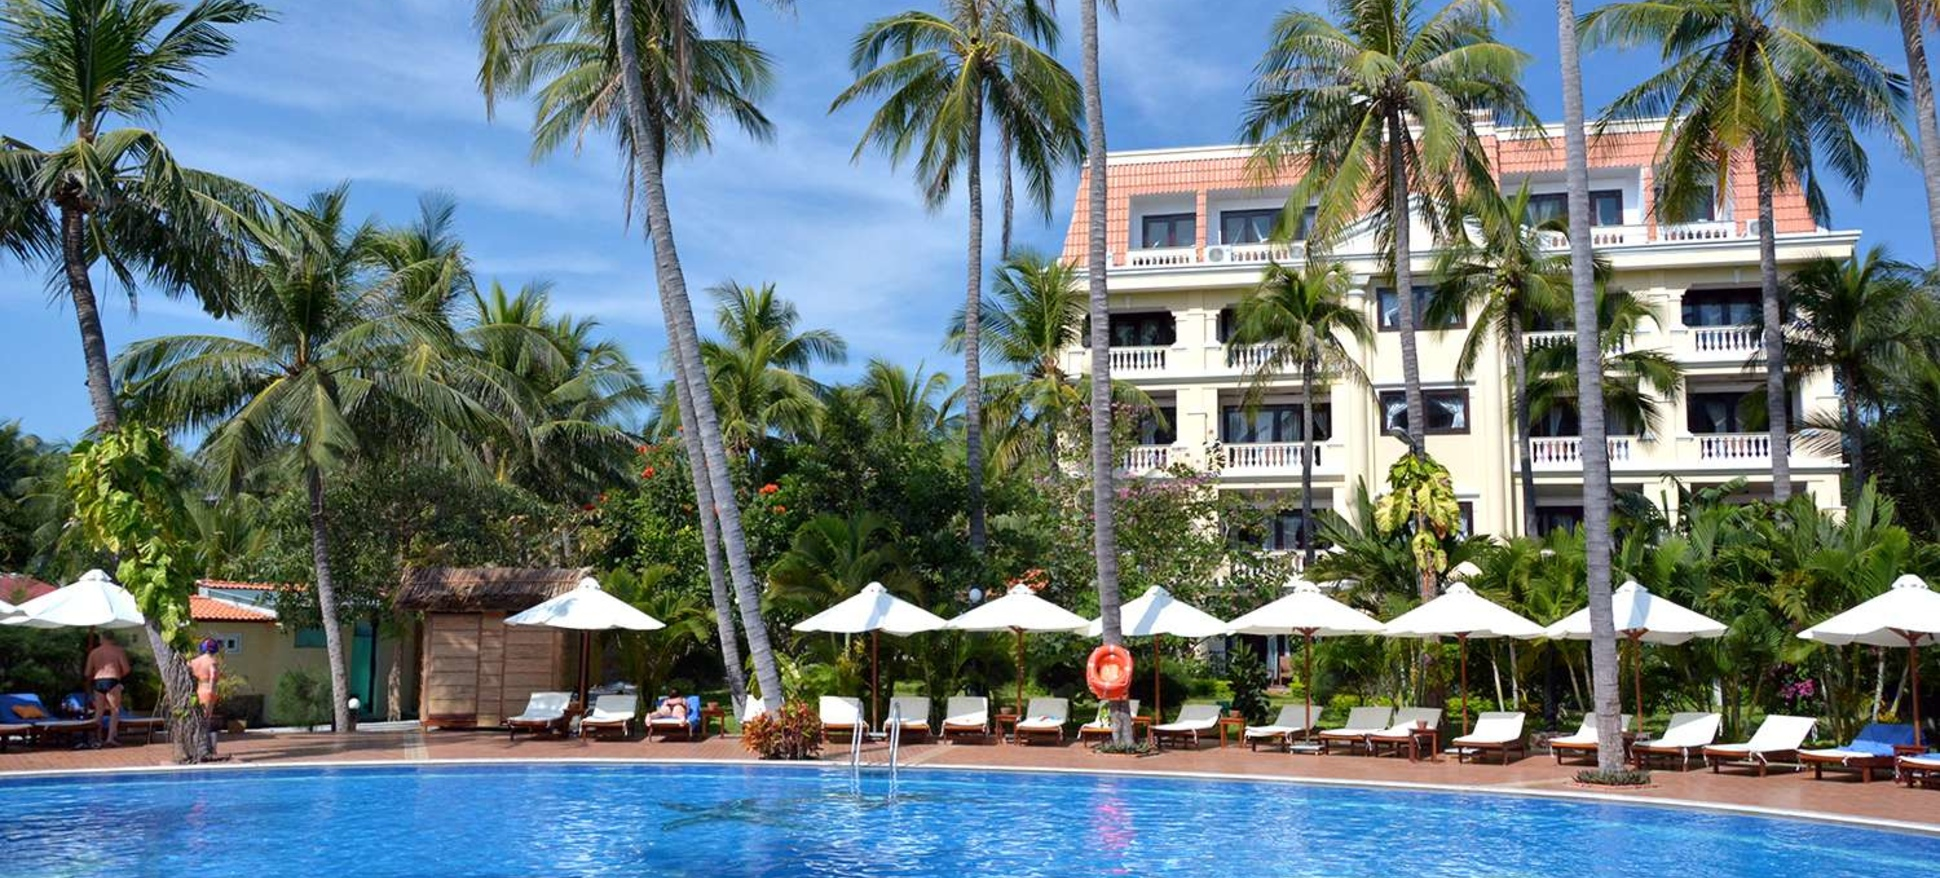 Combined tour Ho Chi Minh (3n) – Phan Thiet (the rest nights) - I (Hošimina, Vjetnama)